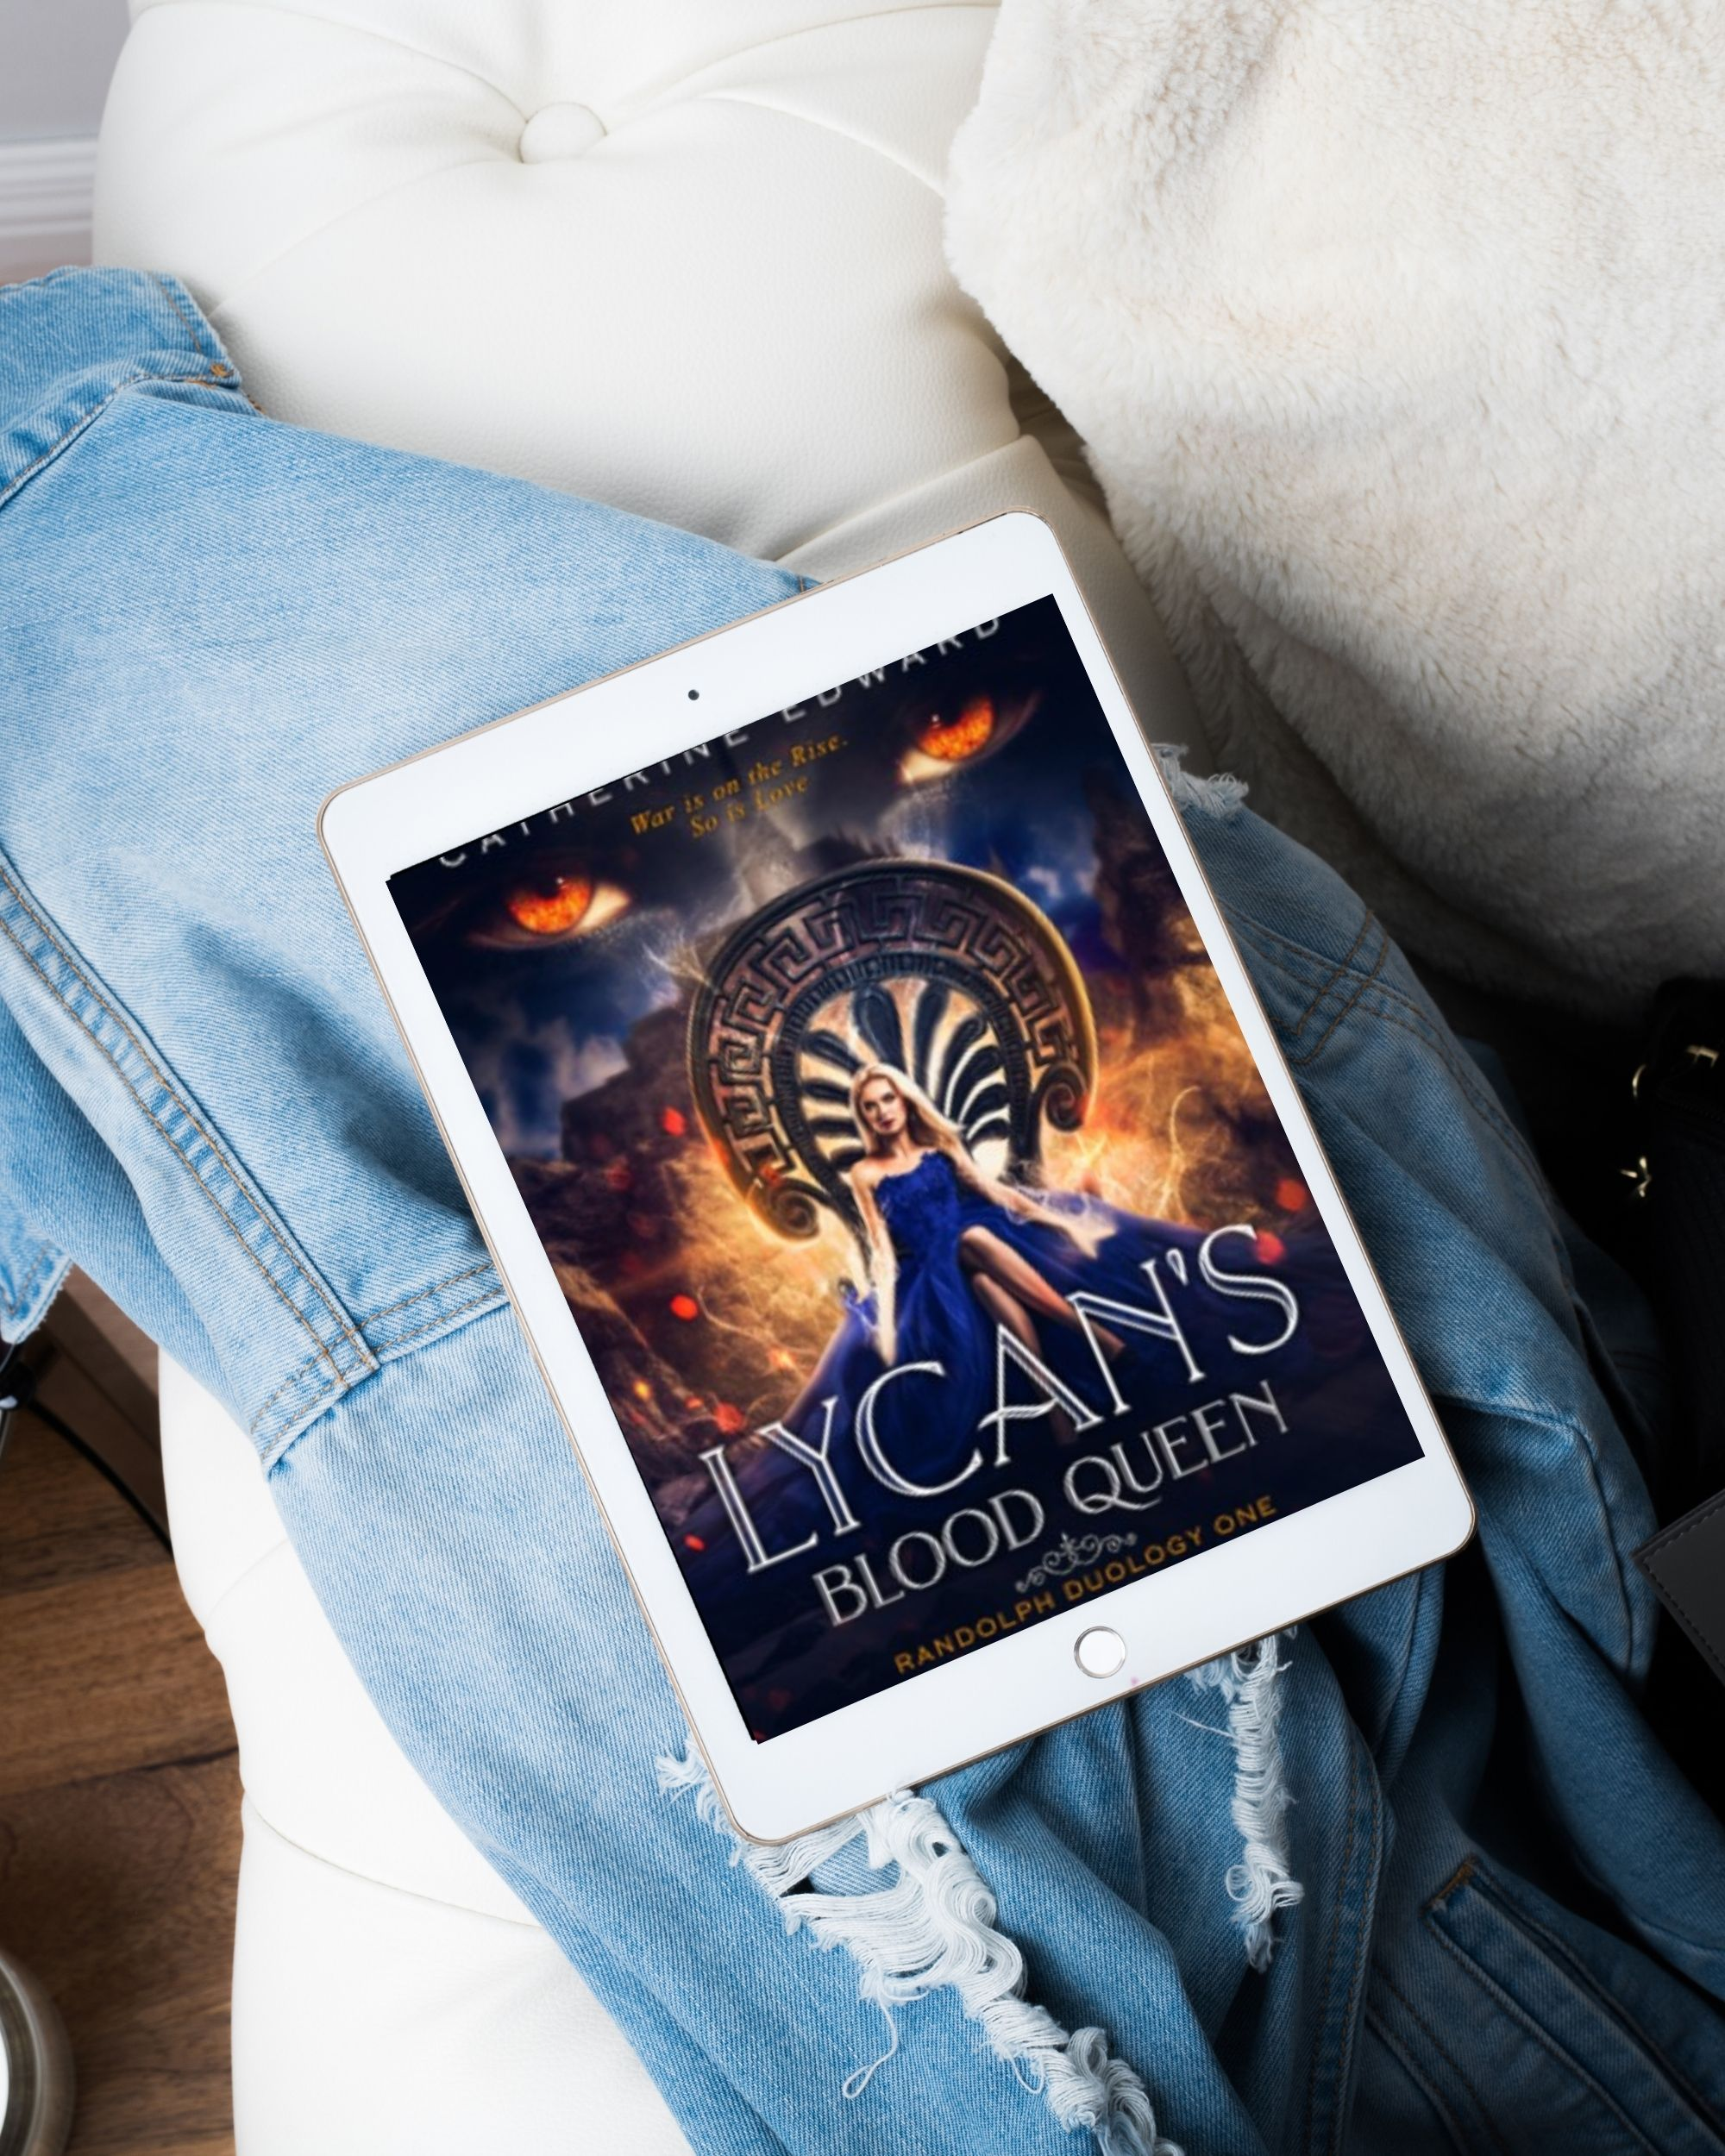 Lycan's Blood Queen by Catherine Edward | Book Review